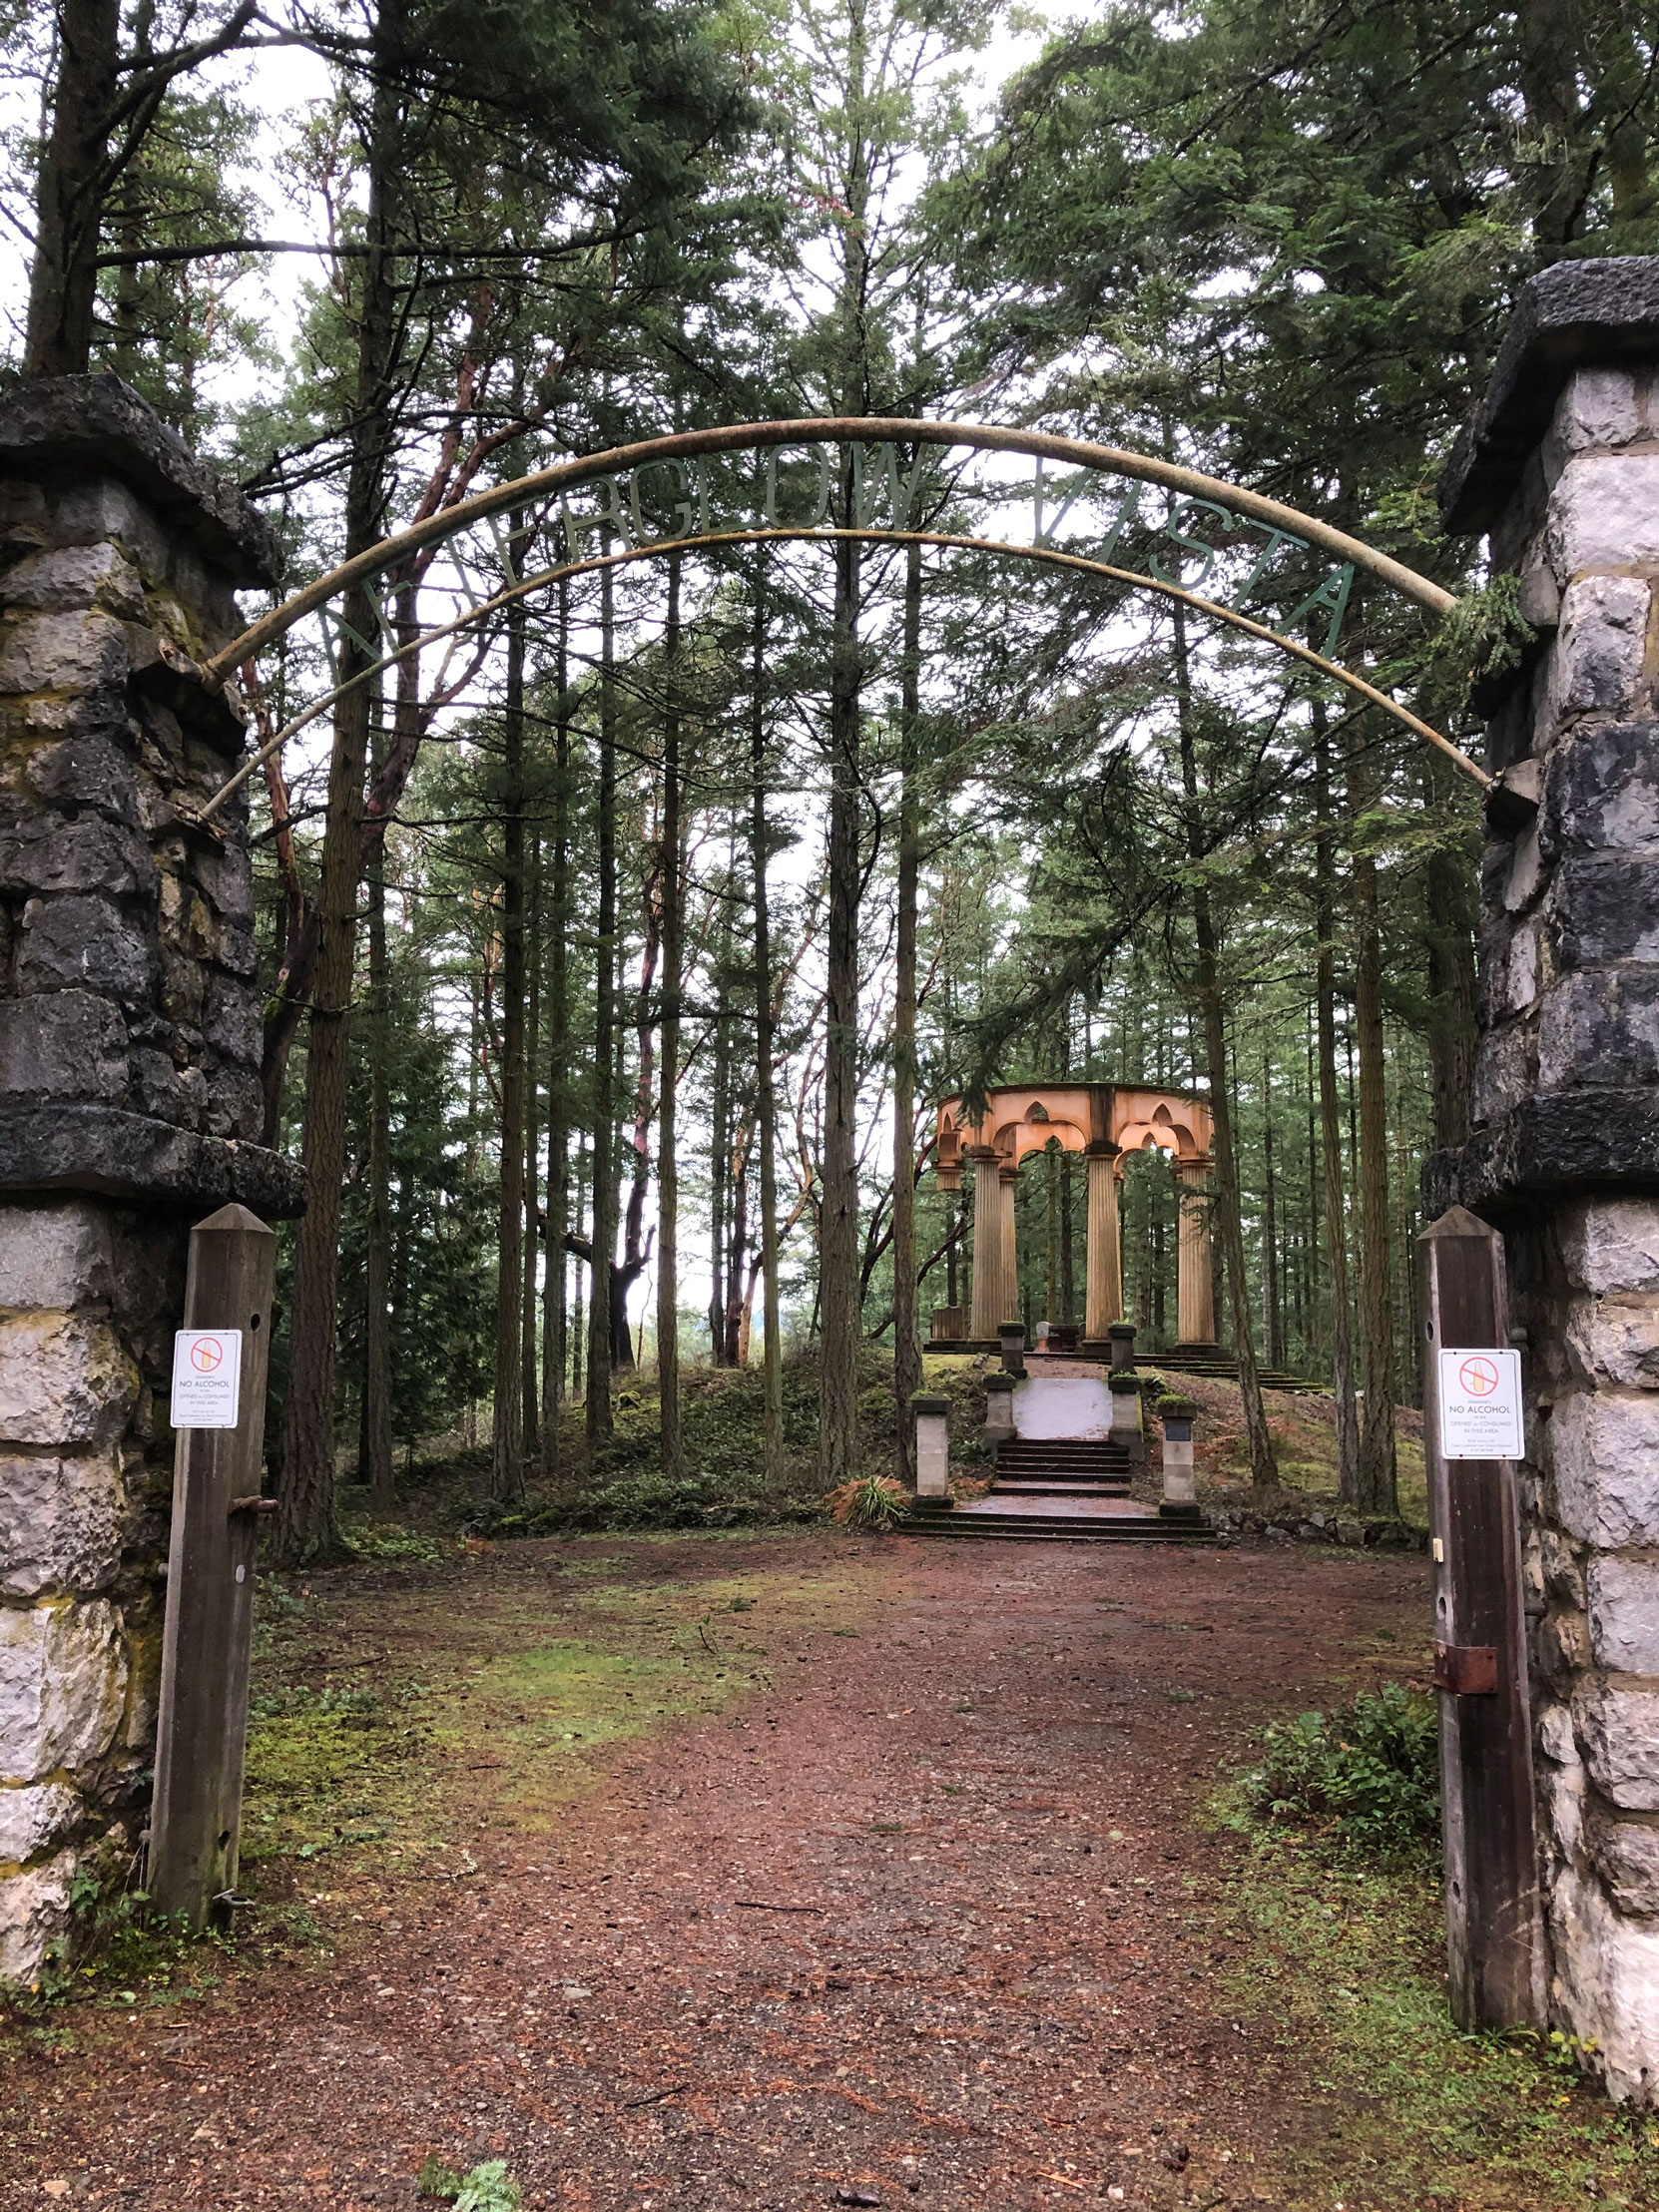 McMillin Mausoleum entrance gate, Roche Harbor, Washington (photo by Mike Gains, V&Q, No.2)